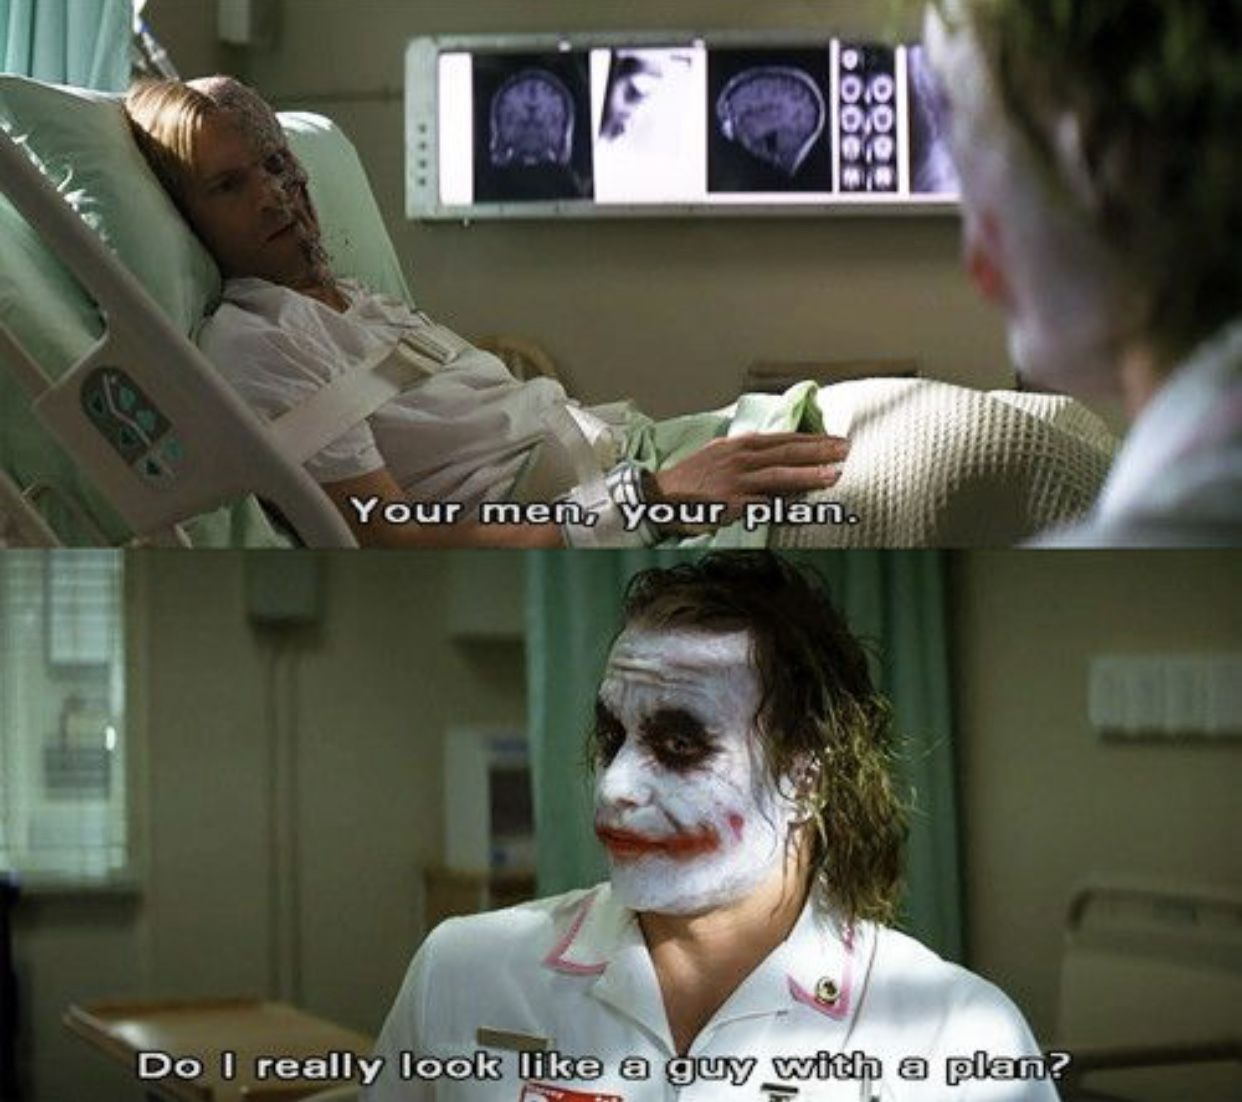 Heath Ledger As The Joker One Of My Favorite Performances Of All